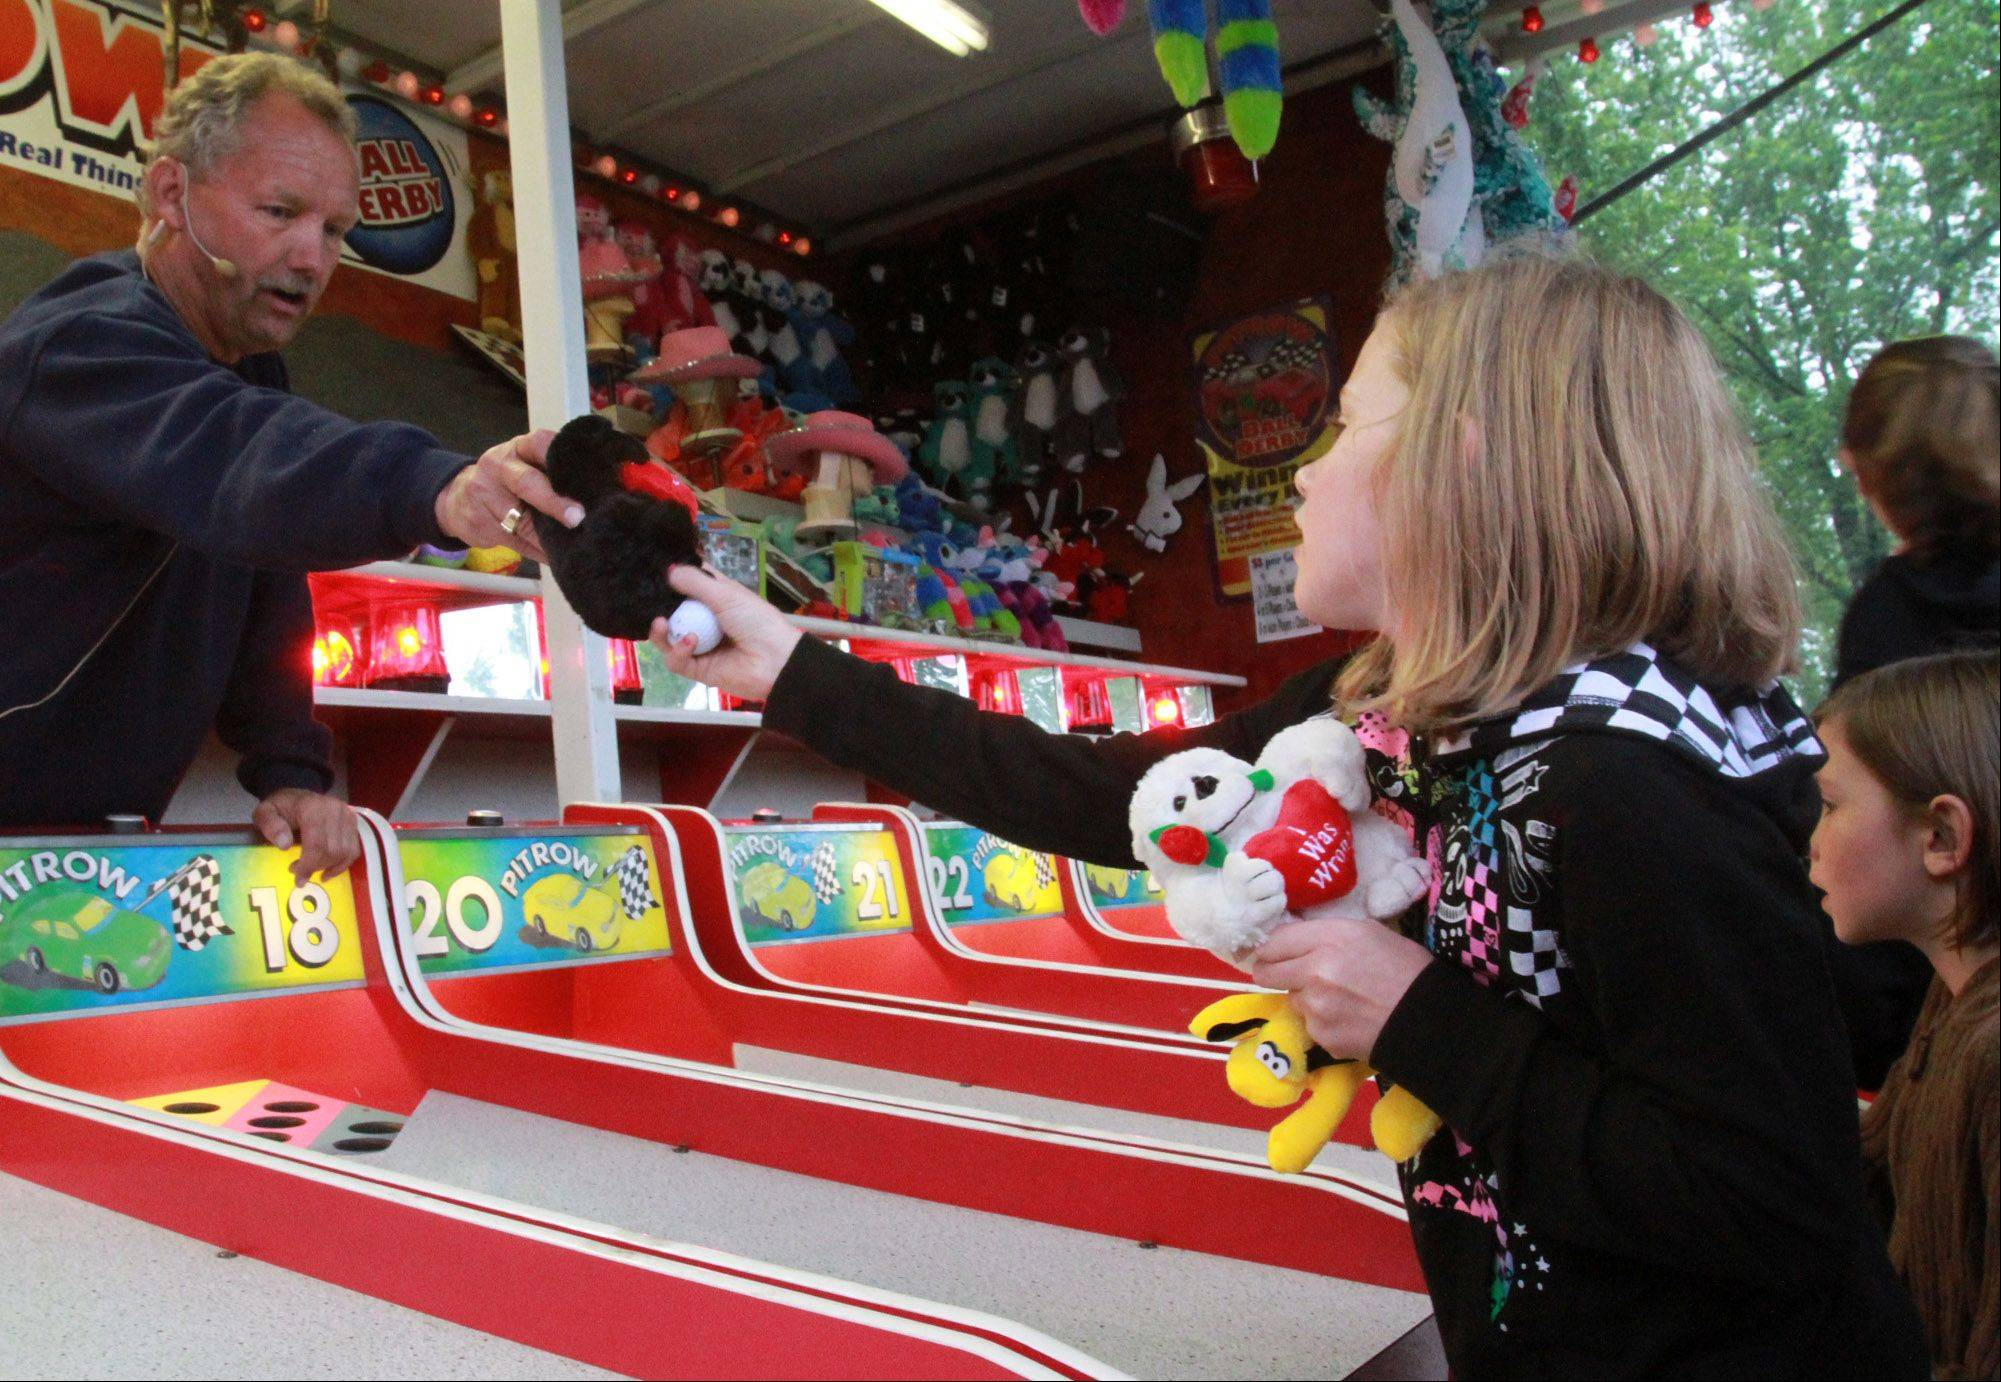 Carnival games will be one attraction at the Lake Villa Celebration of Summer this year.